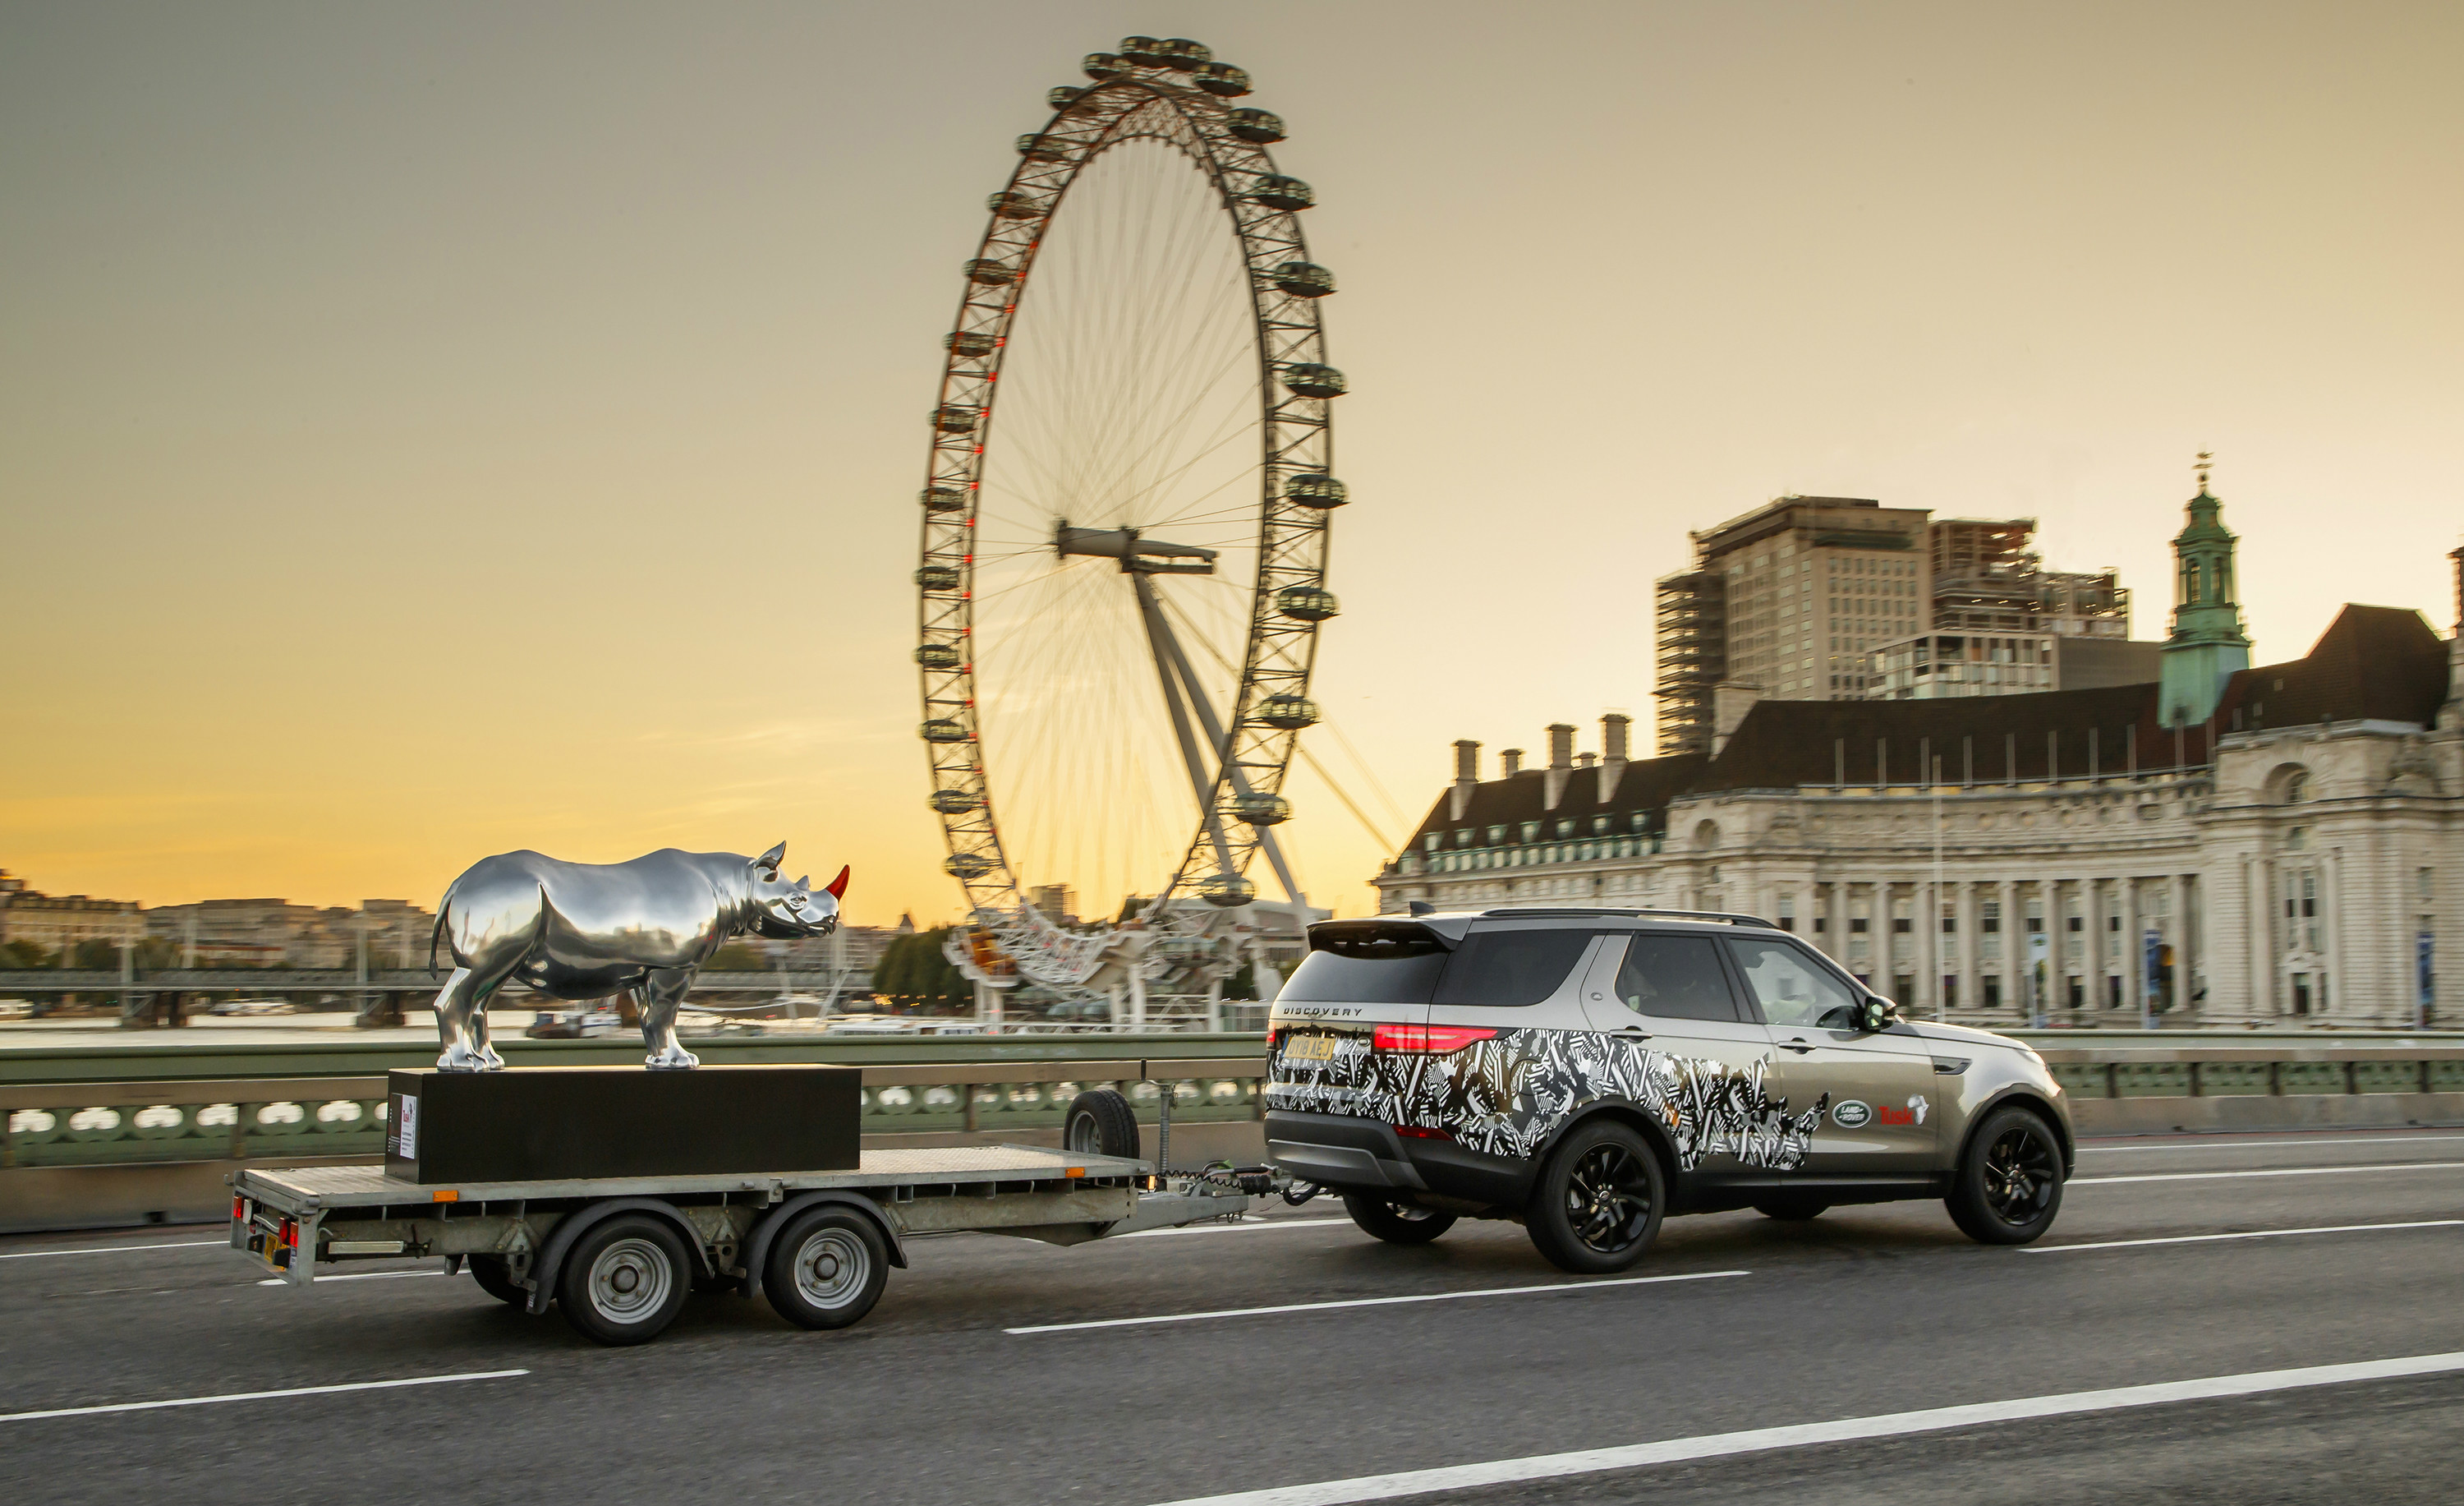 The gleaming rhino sculpture, embellished by Land Rover's chief design officer Gerry McGovern, made its debut in central London as part of the Tusk Rhino Trail to raise funds for the conservation of this endangered species.